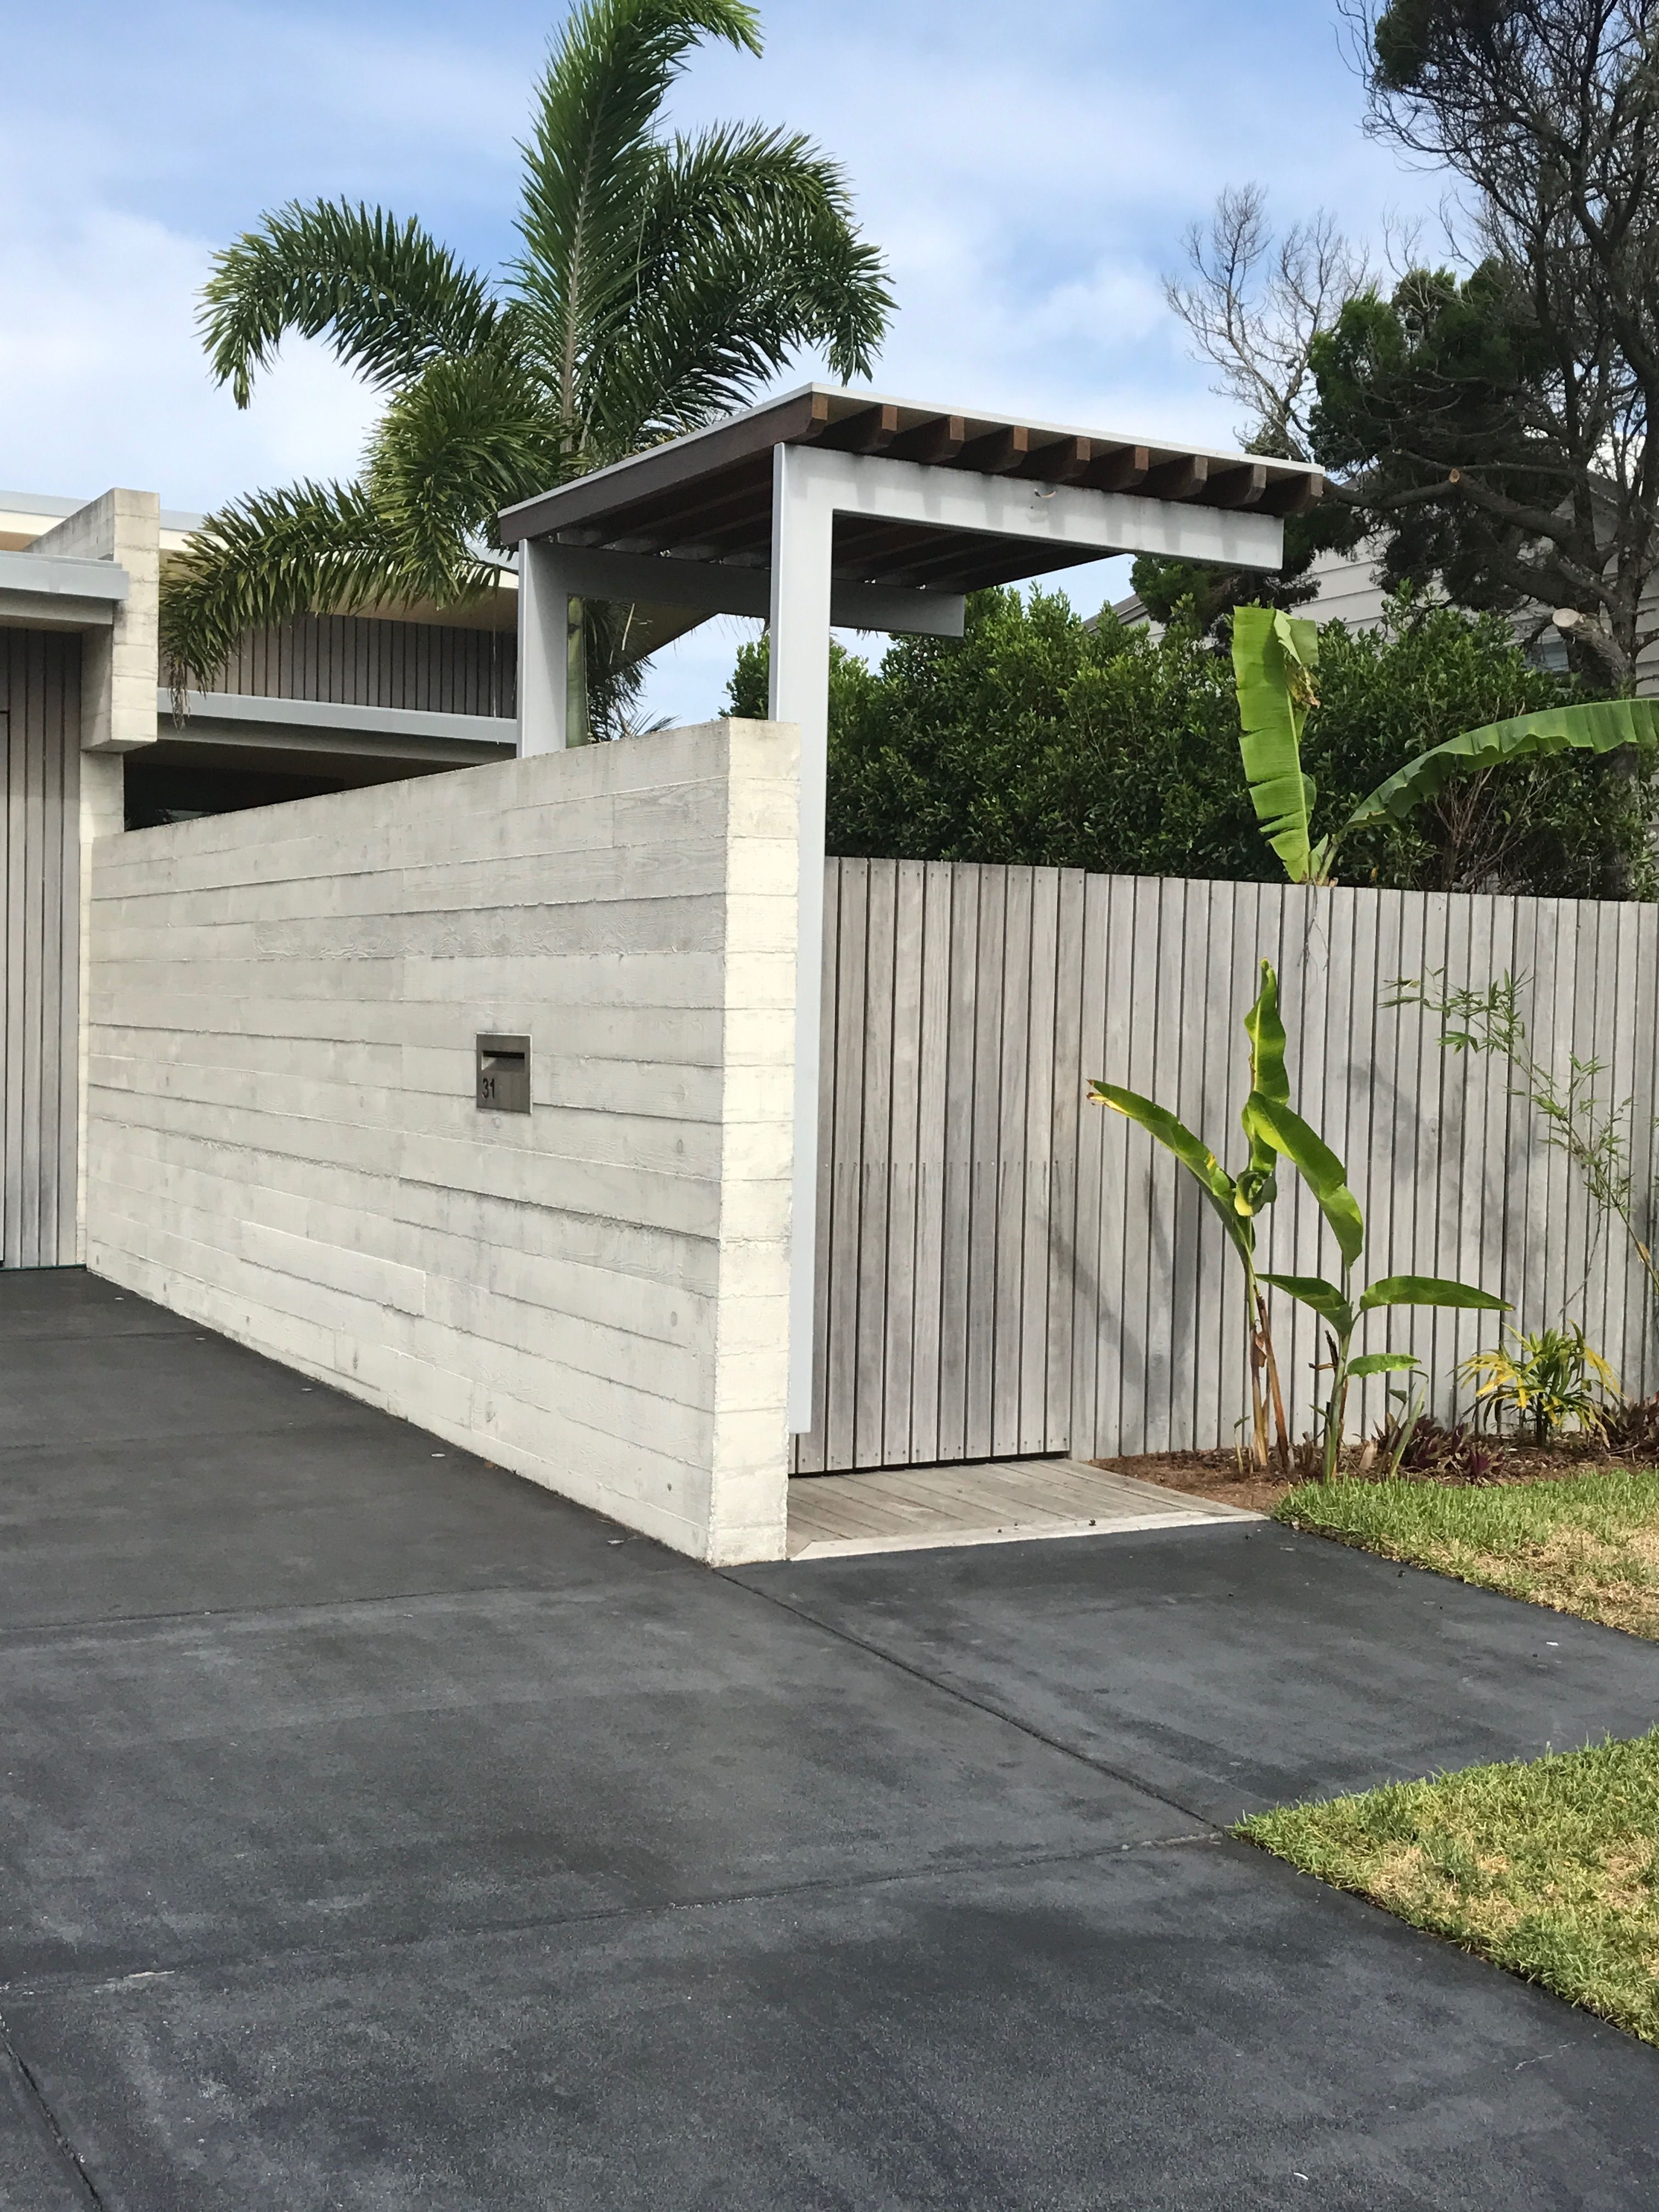 Fence Concrete With Timber ( Grey Or White) And Dark